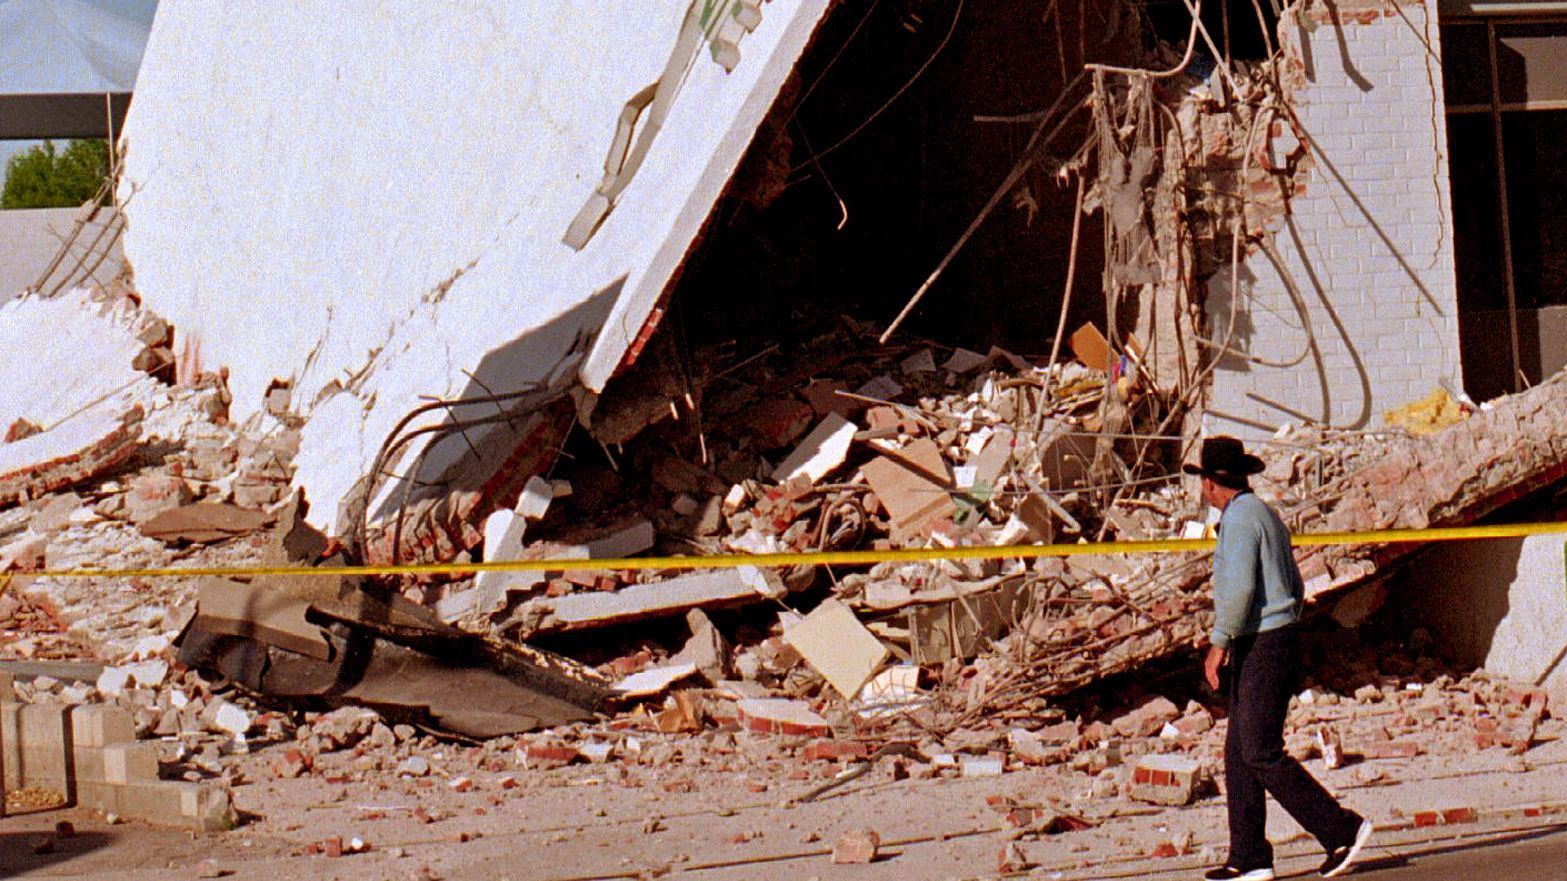 Earthquake Safety - What is the relation of Richter scale and earthquake intensity?